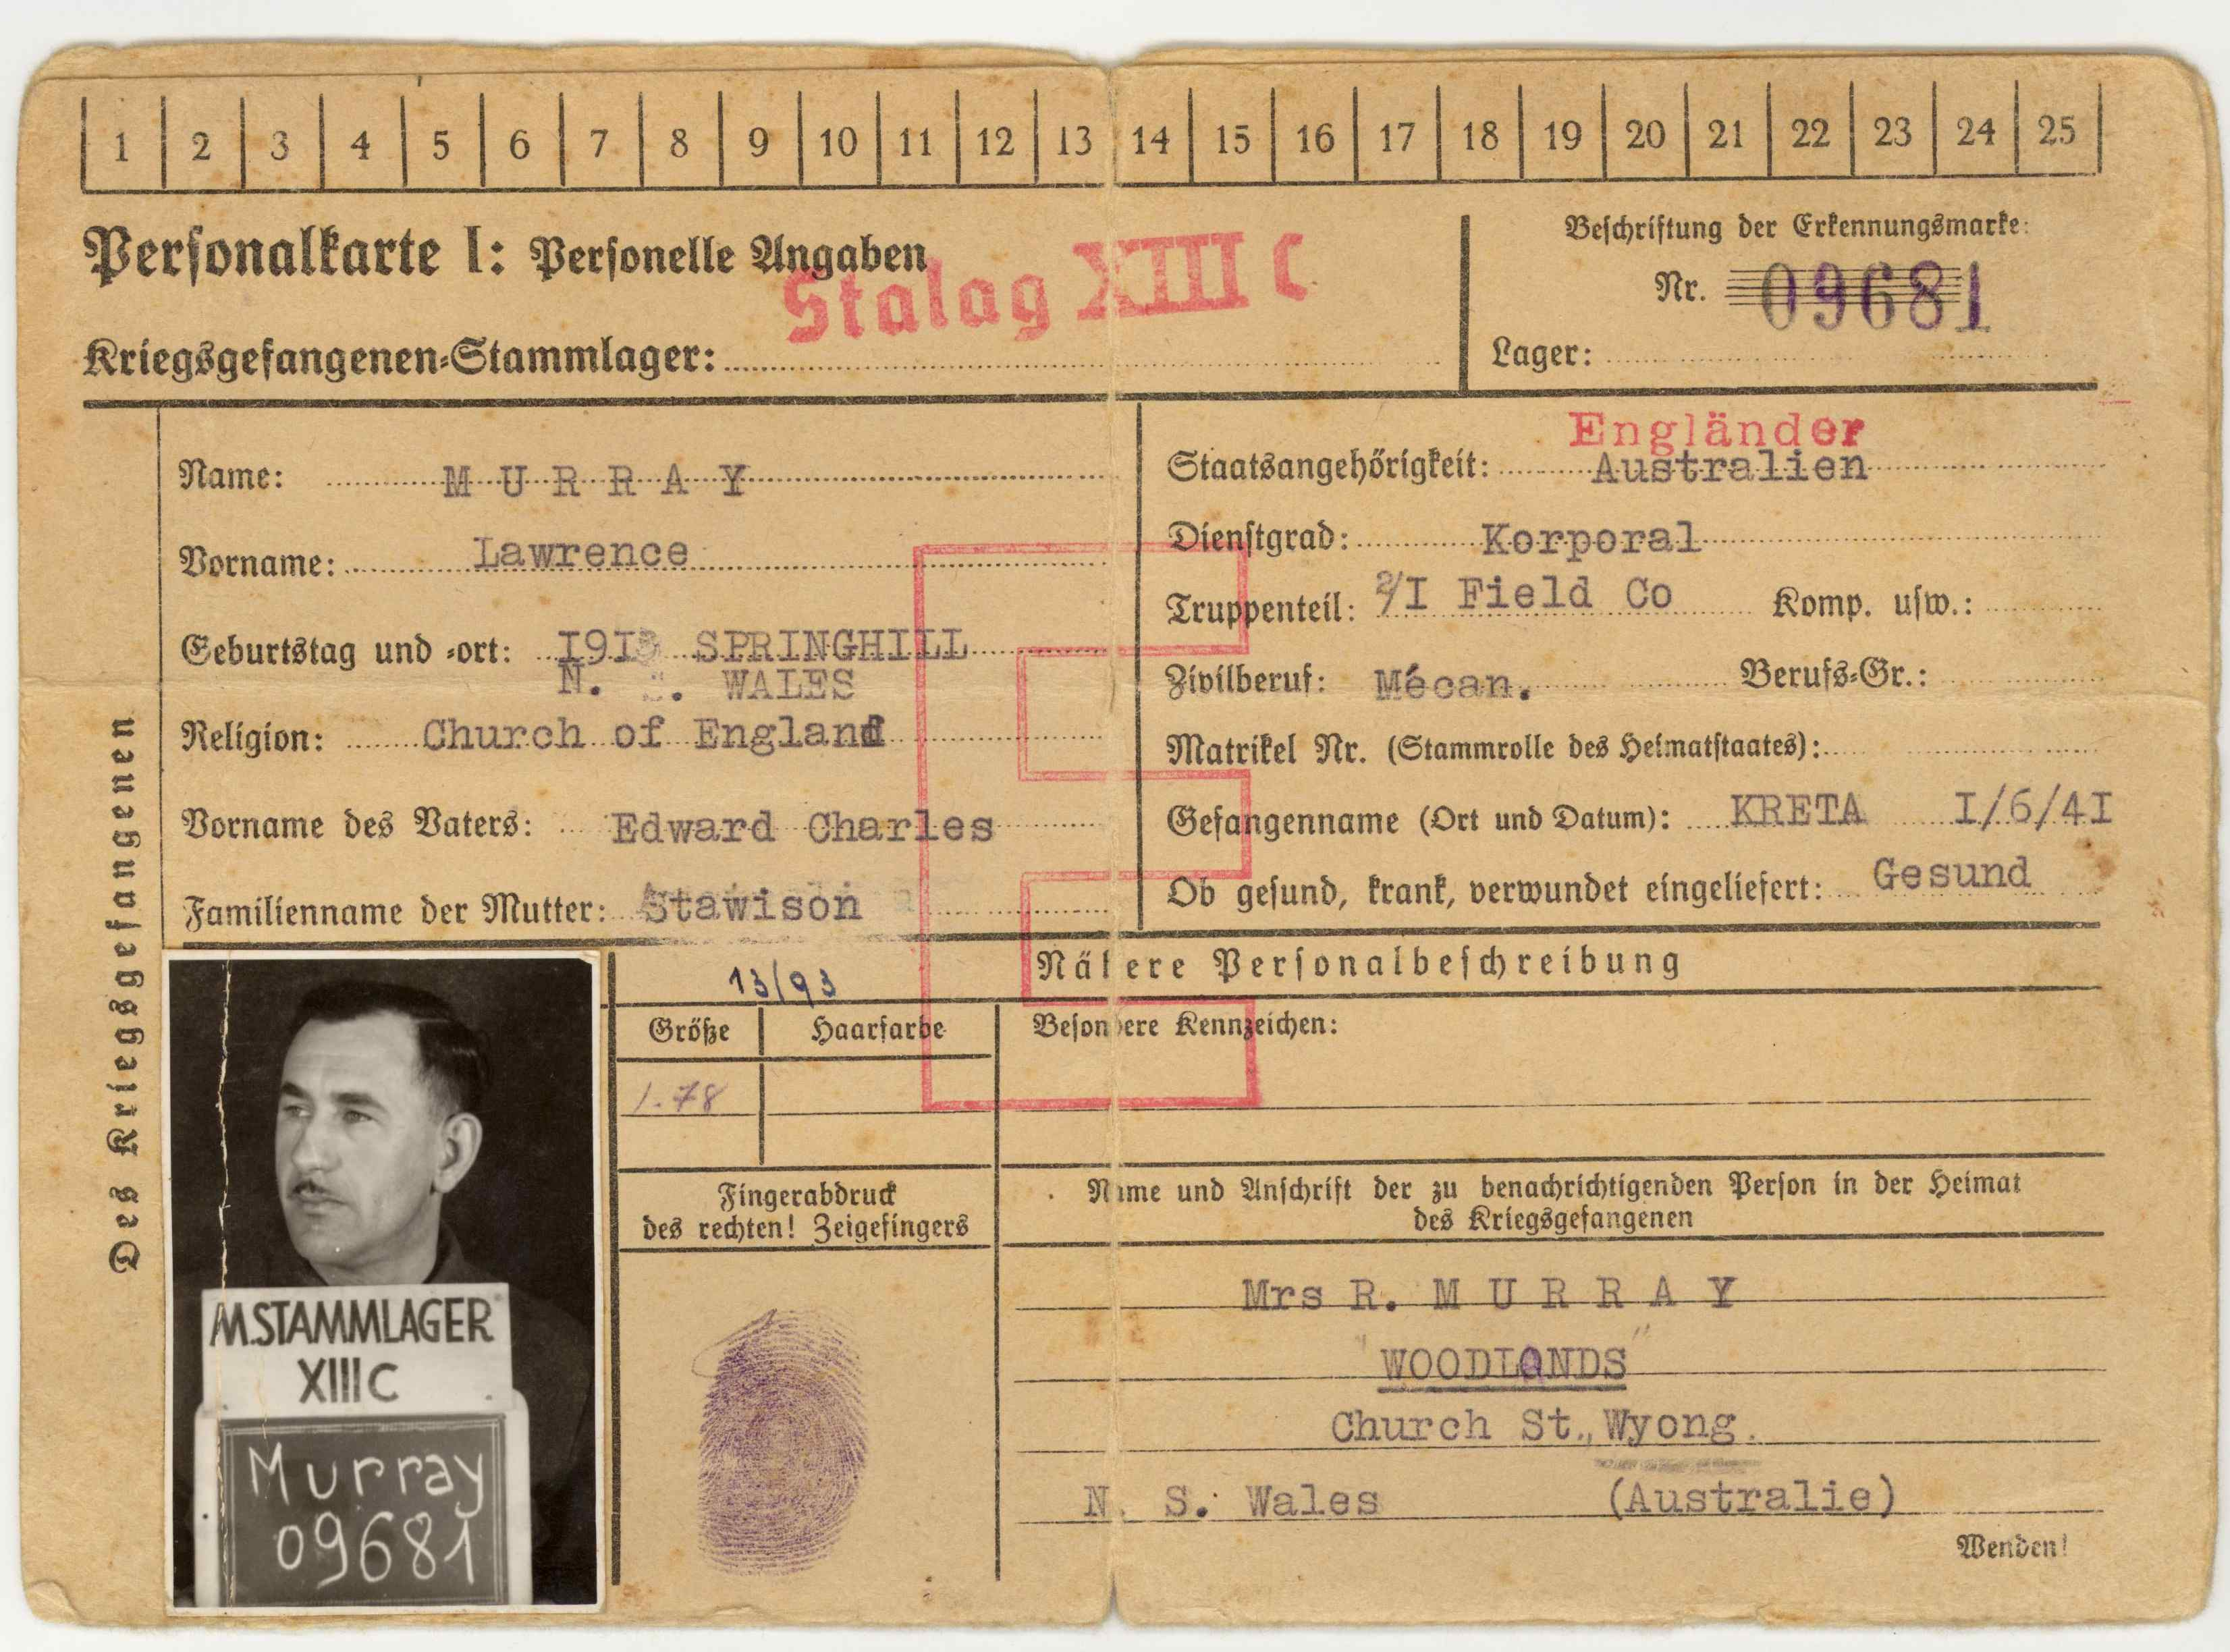 Stalag XIIIC Record Card_Copy.jpg